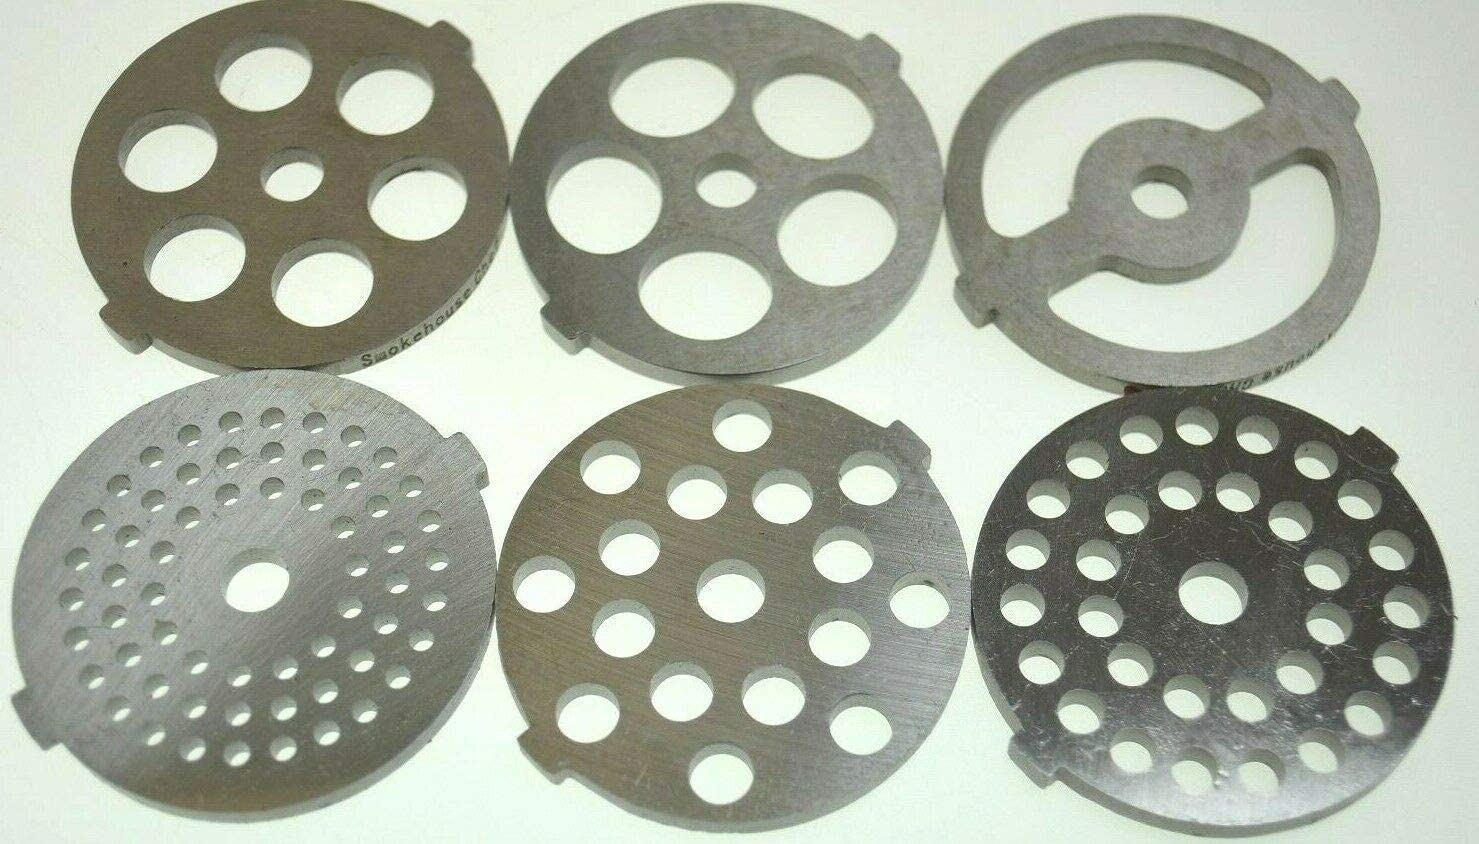 SIX new sizes of meat grinder plates for MOST Back to Basics, Rival and others 2 1/8